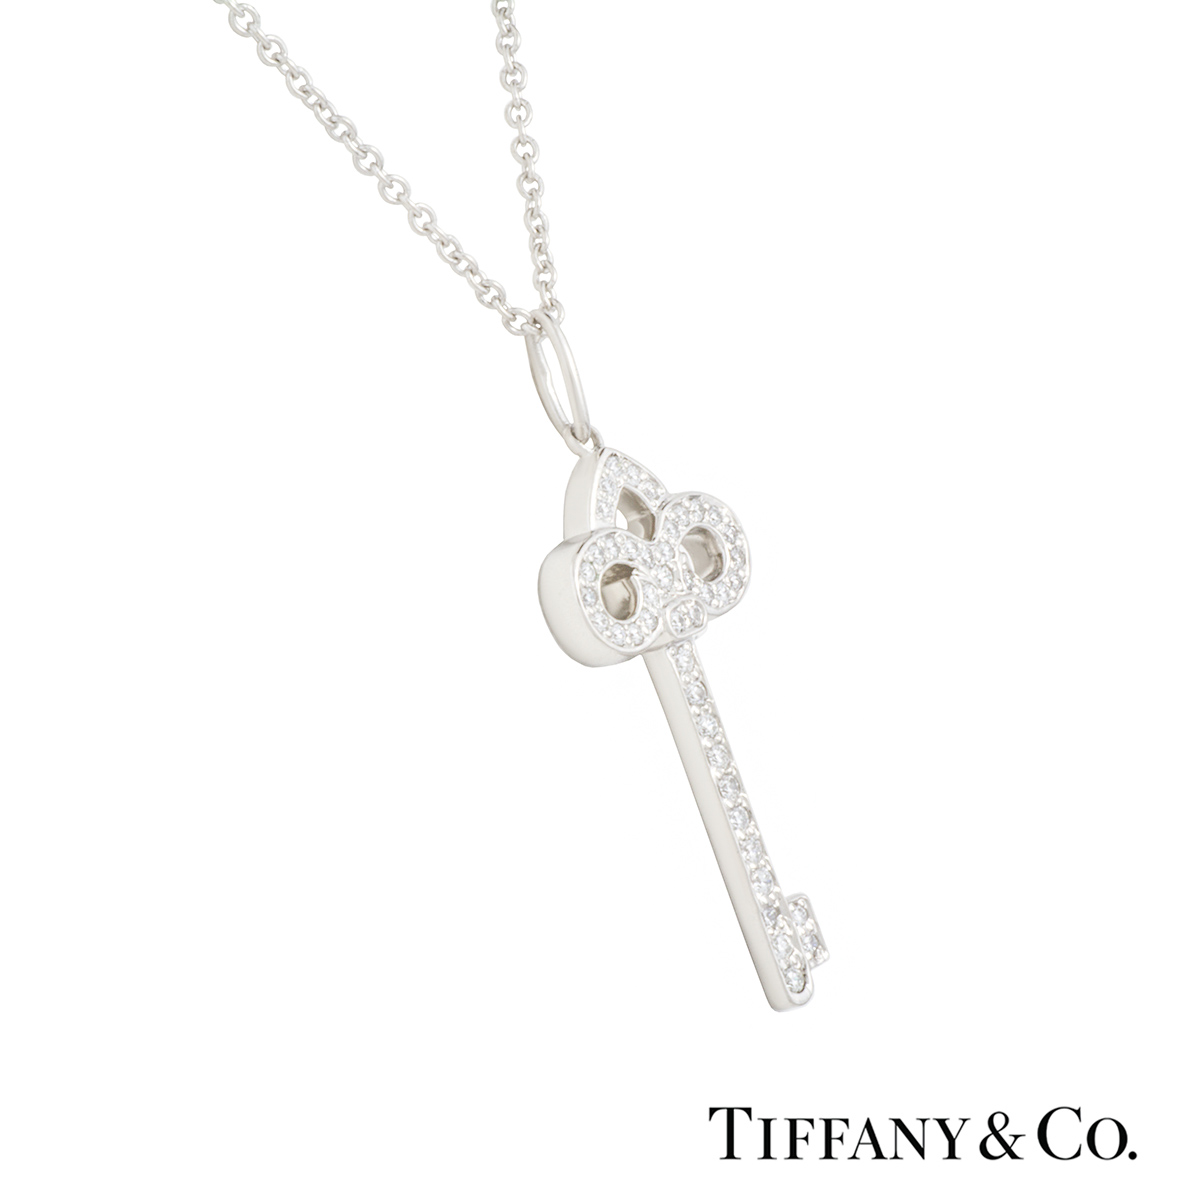 fd7bb9812 ... Tiffany & Co. Diamond Set Fleur De Lis Key Pendant in Platinum ...